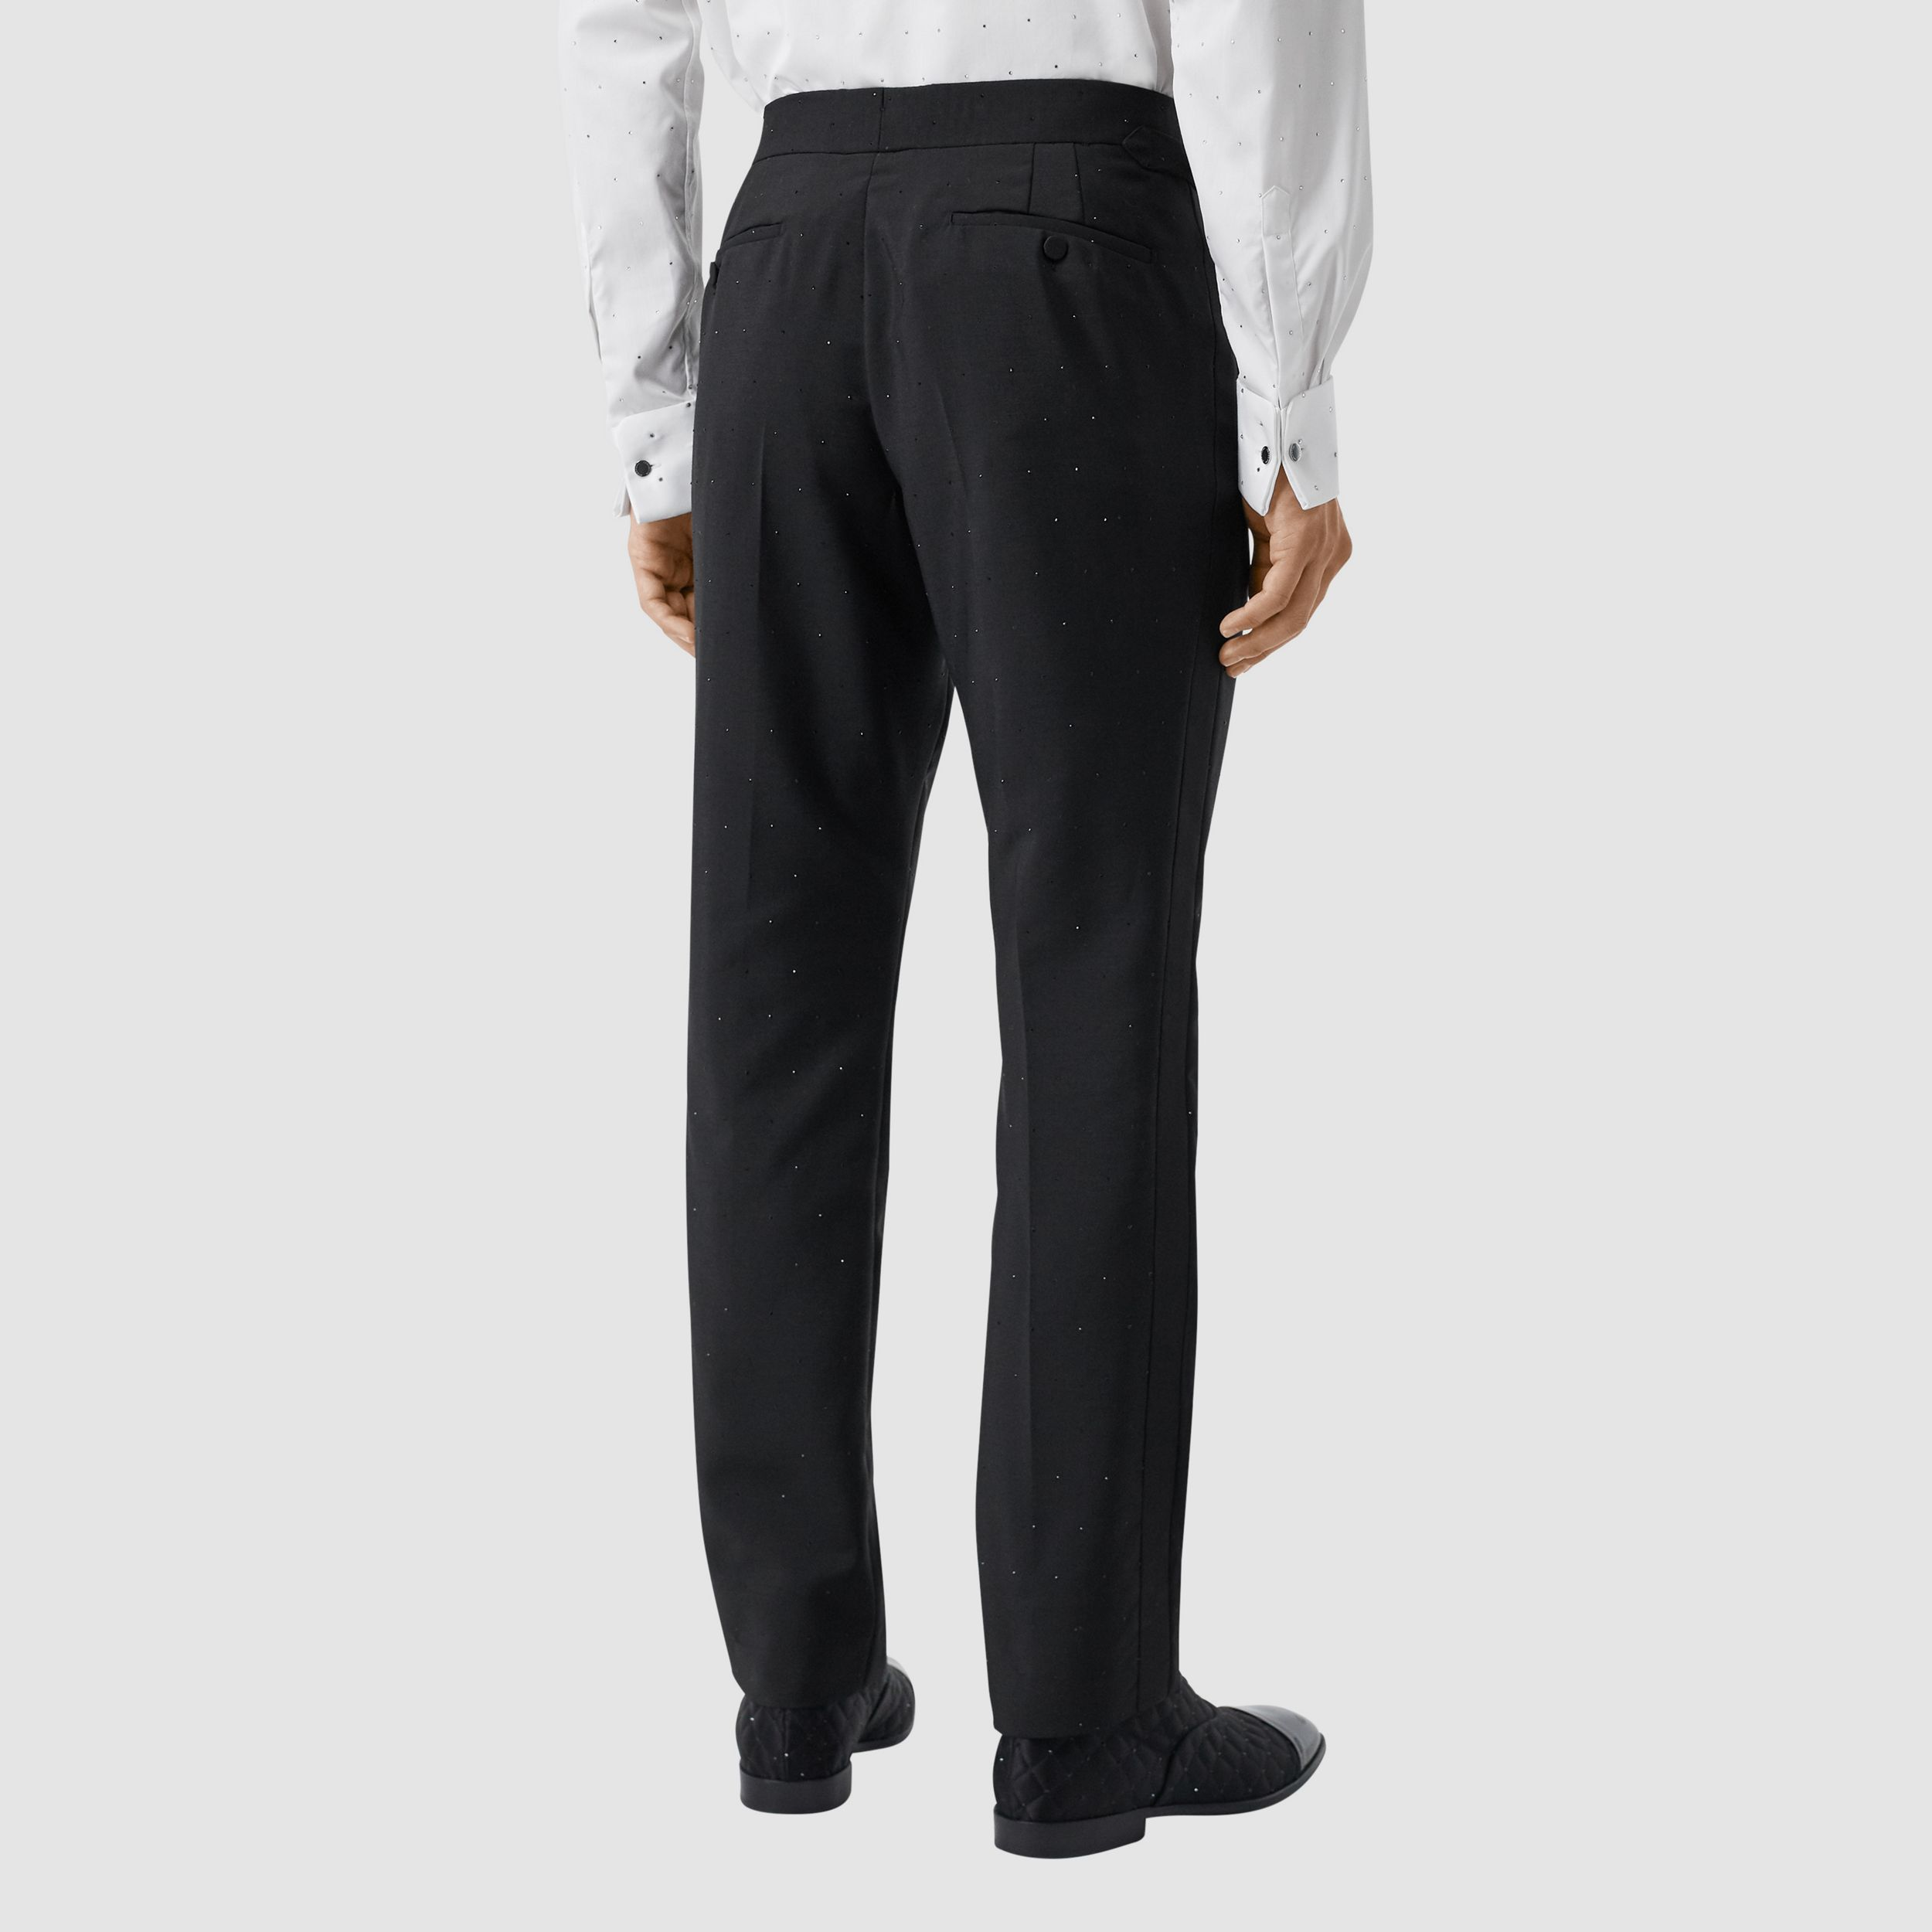 Classic Fit Embellished Mohair Wool Tailored Trousers in Black - Men | Burberry - 3